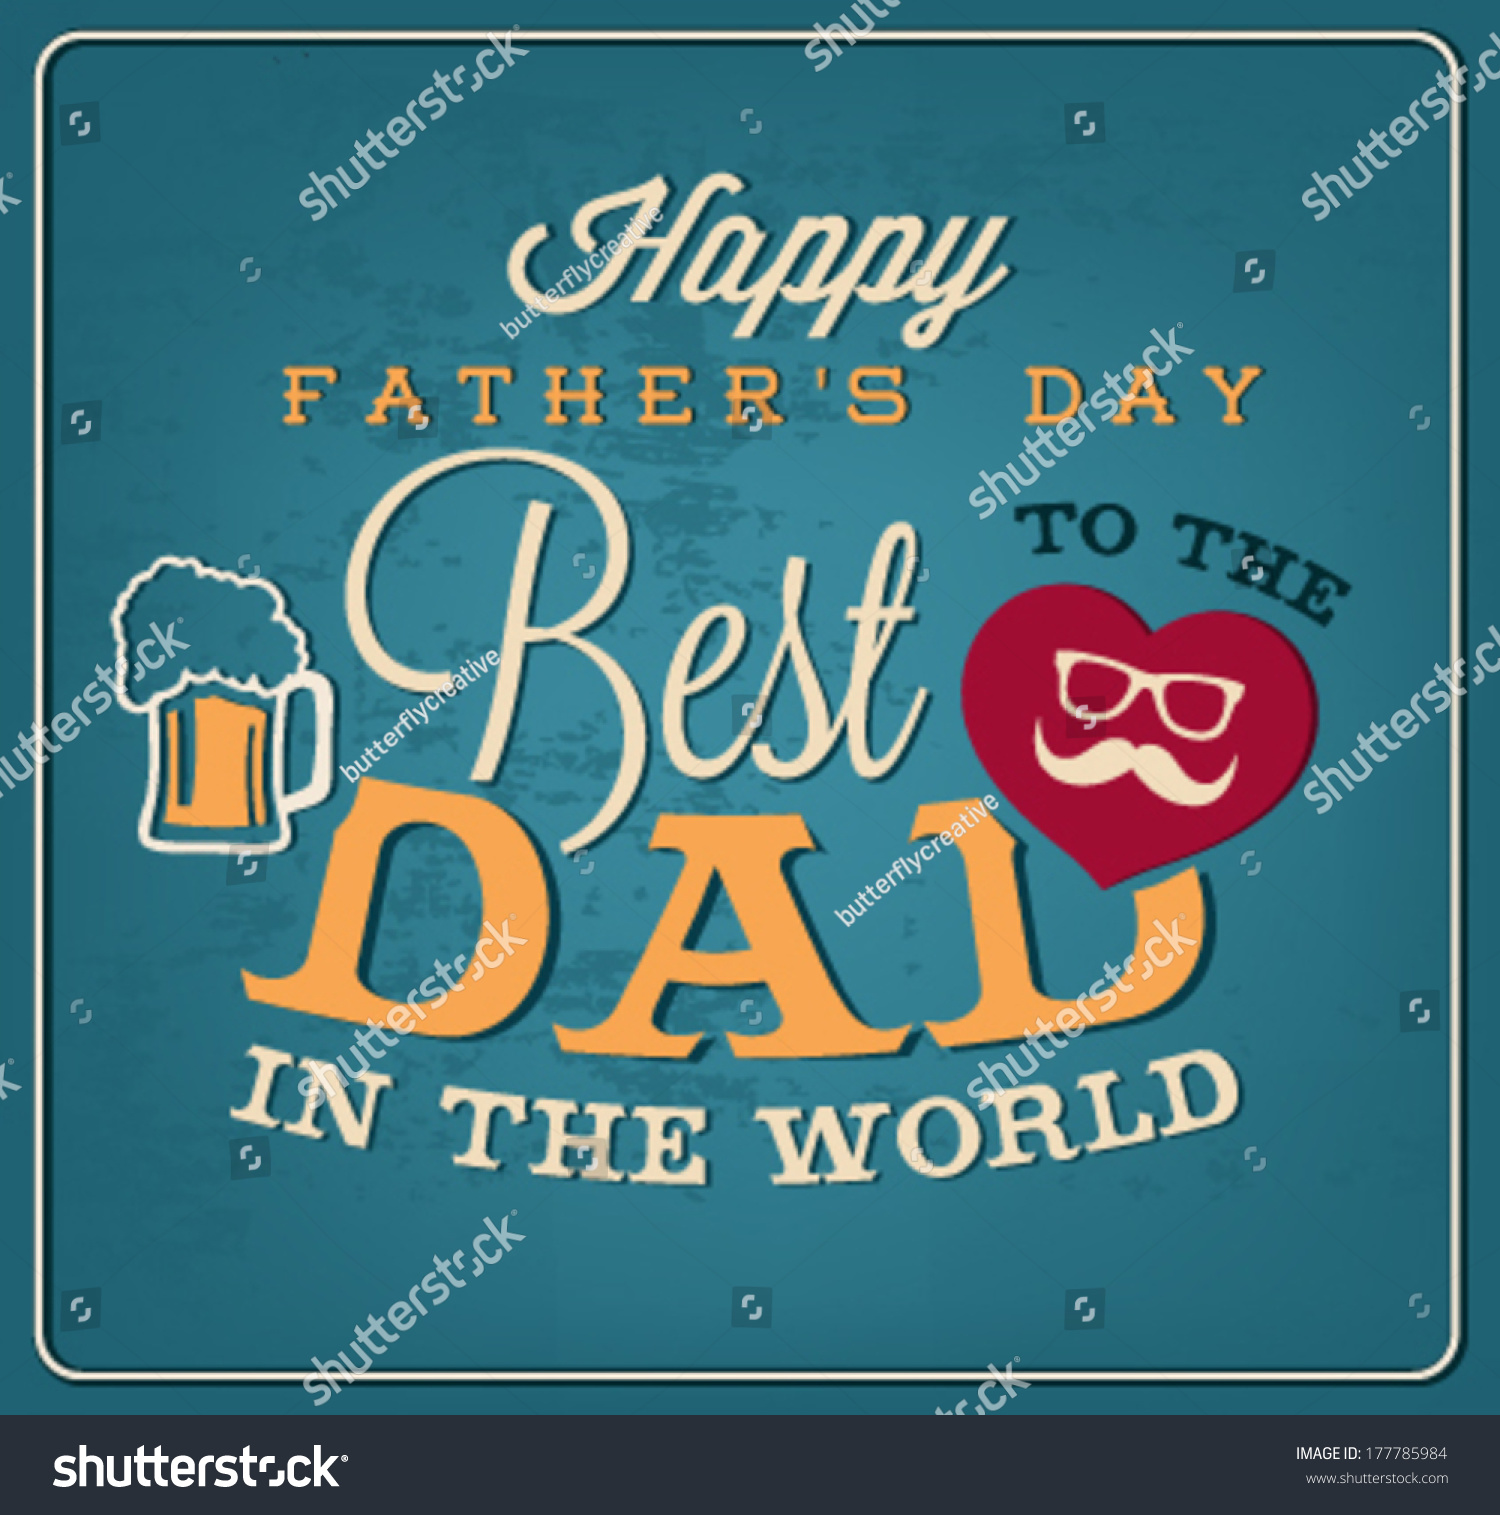 Happy Fathers Day Greeting Card Template In Vintage Style Ez Canvas